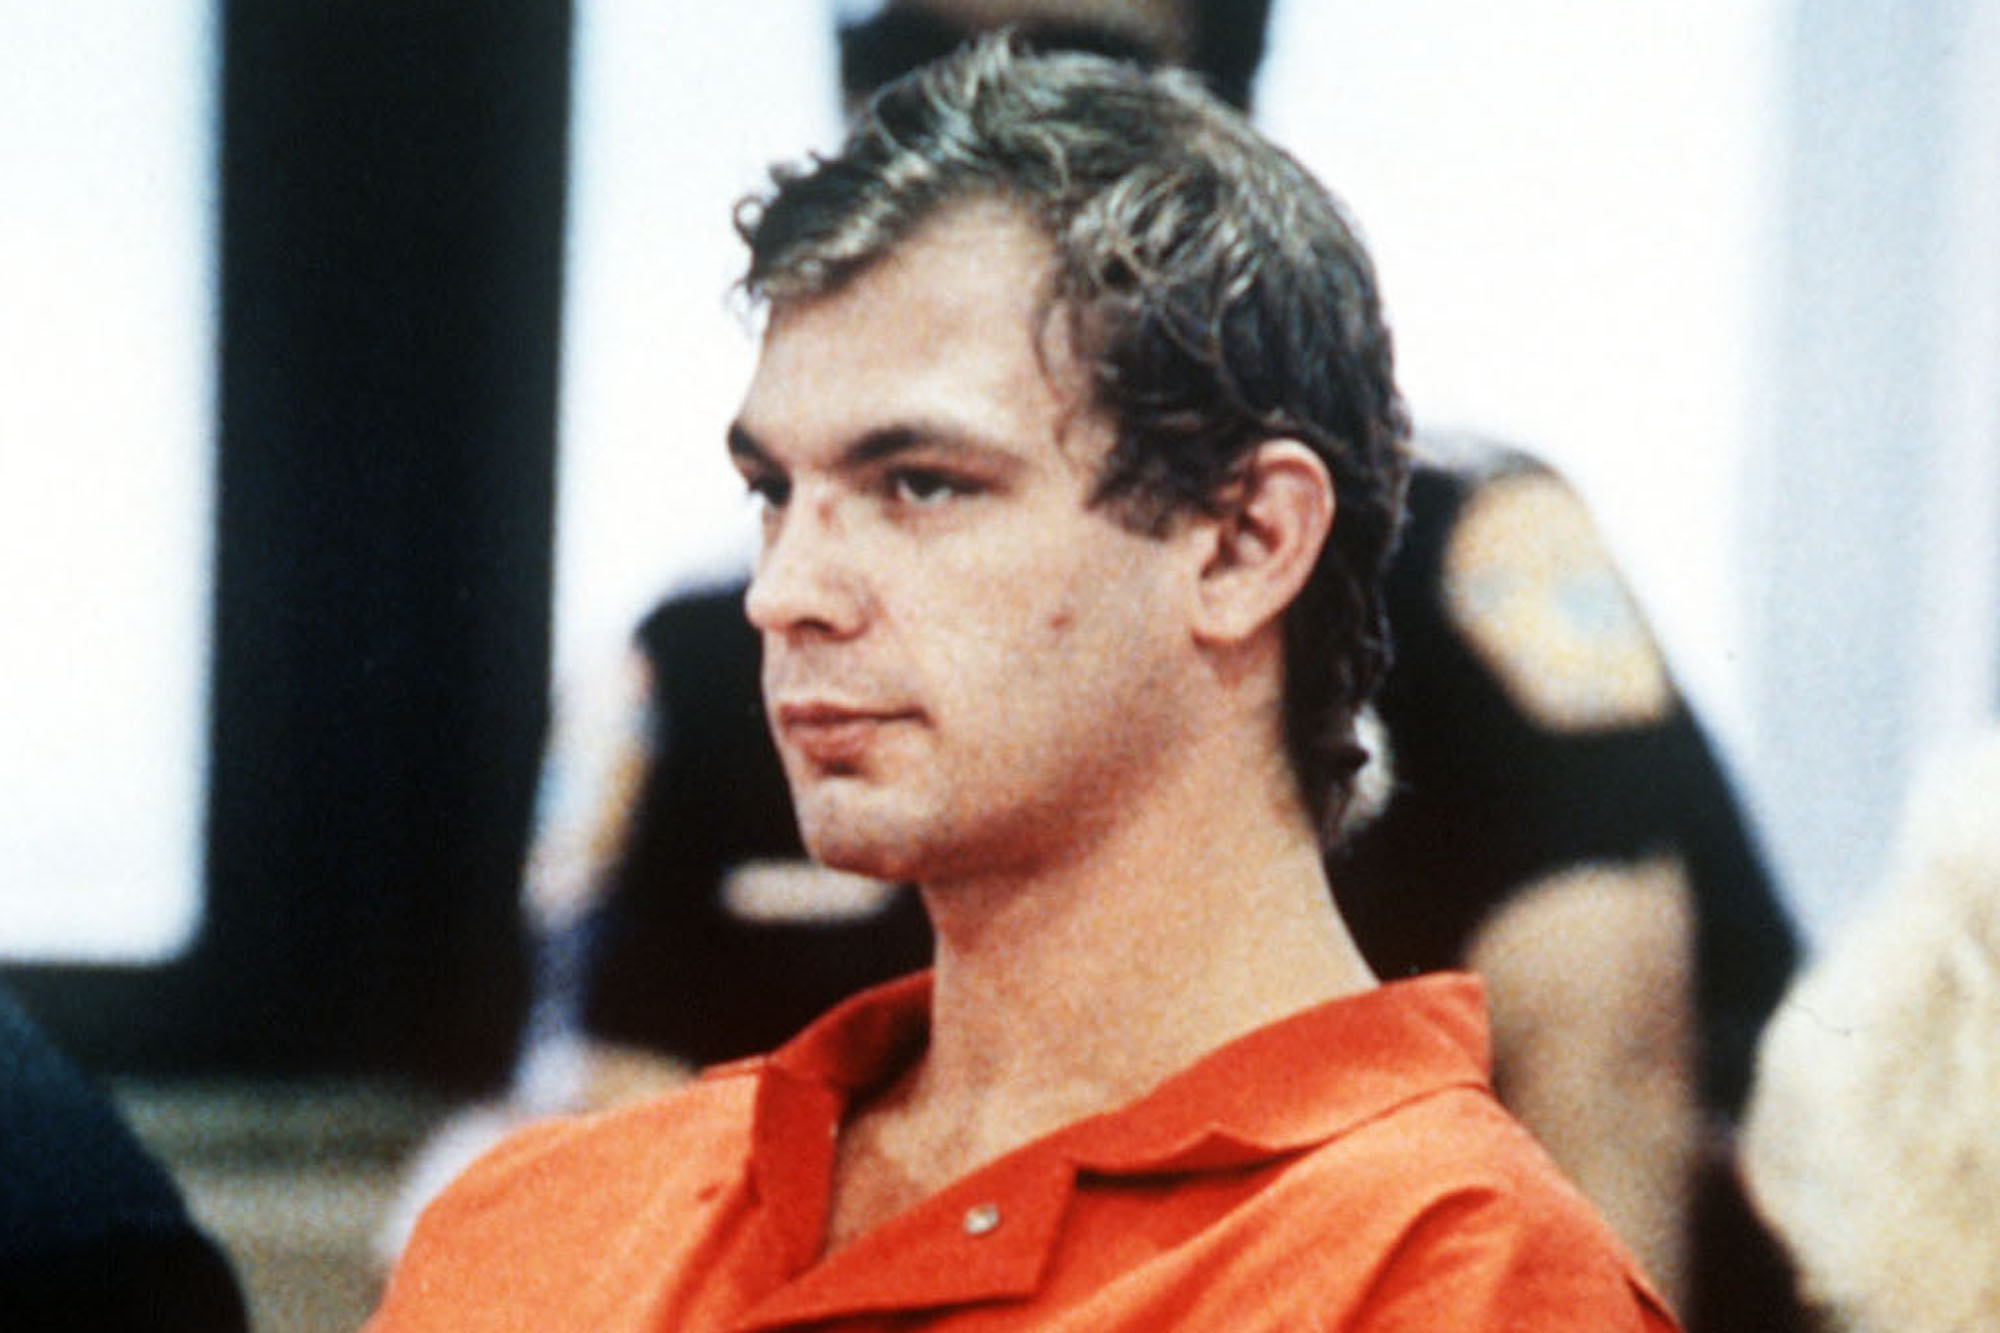 Jeffery Dahmer at a preliminary hearing in 1991. Photo: AP